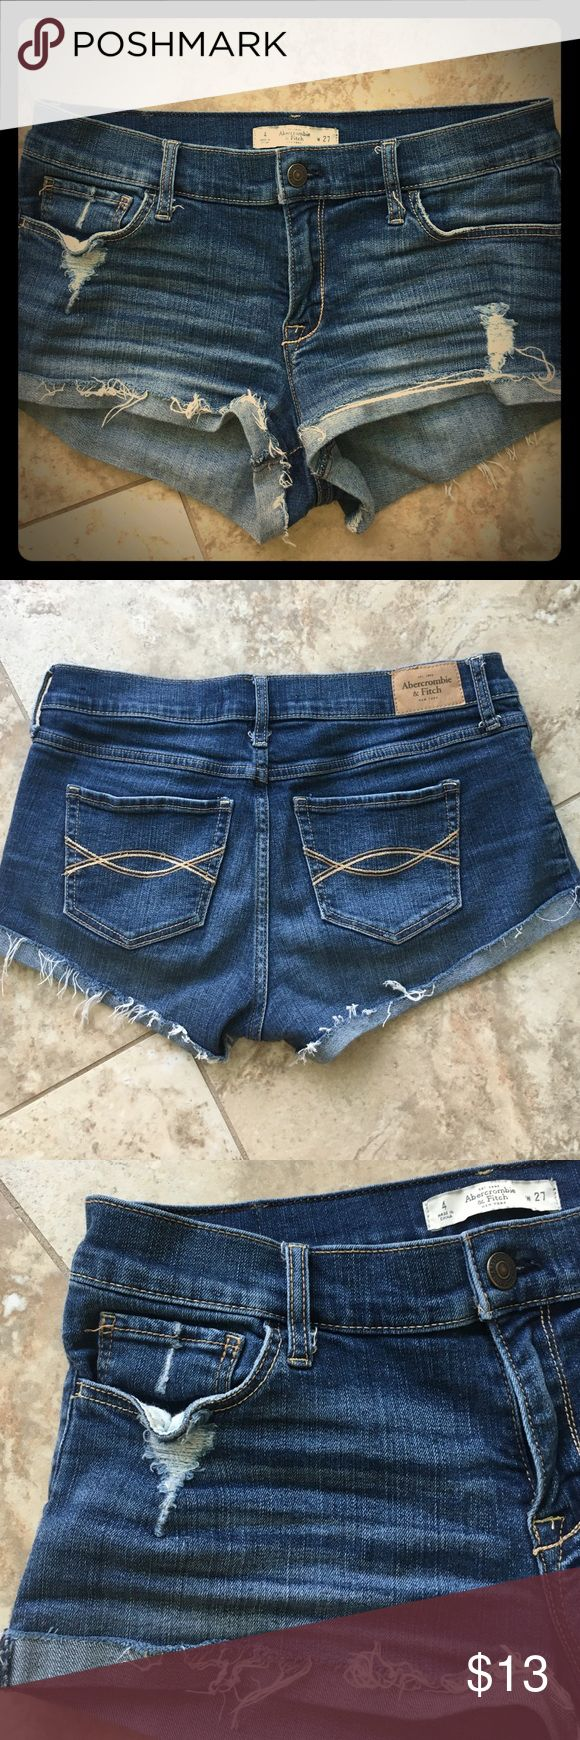 Abercrombie & Fitch jean shorts Abercrombie & Fitch ripped jean shorts low rise Abercrombie & Fitch Shorts Jean Shorts